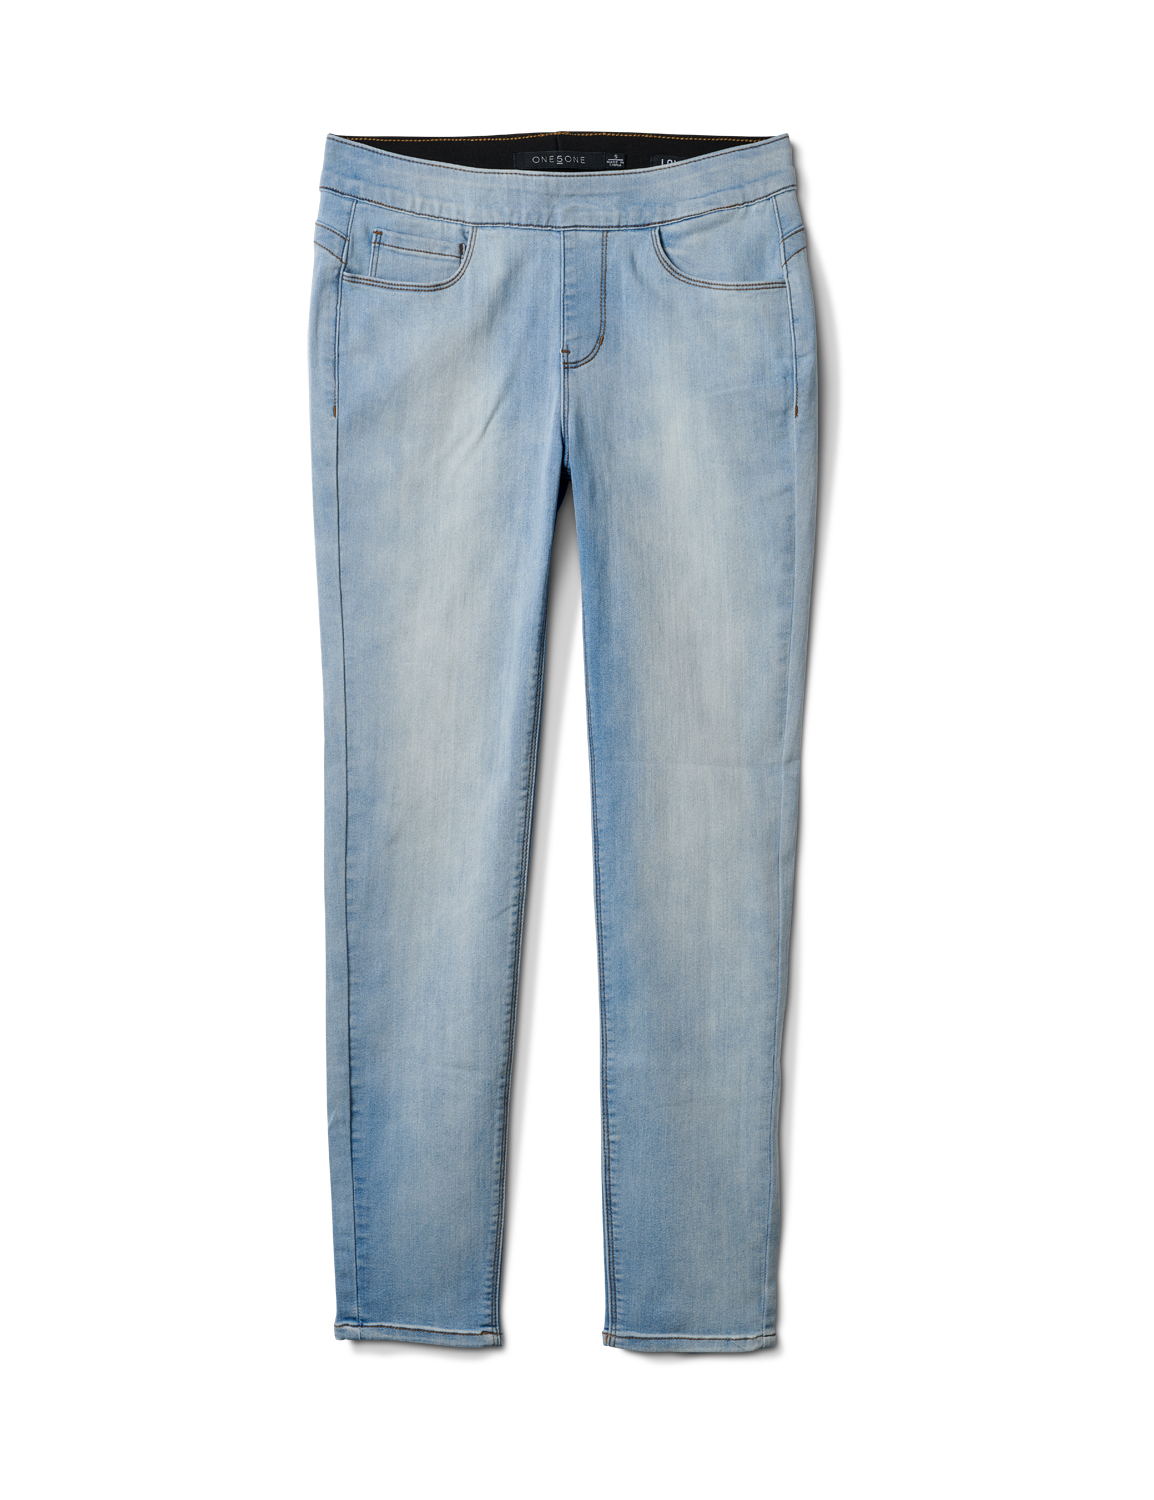 Mid Rise Skinny Pull On Jean Pants - Front And Back Pockets -Bleach - Front